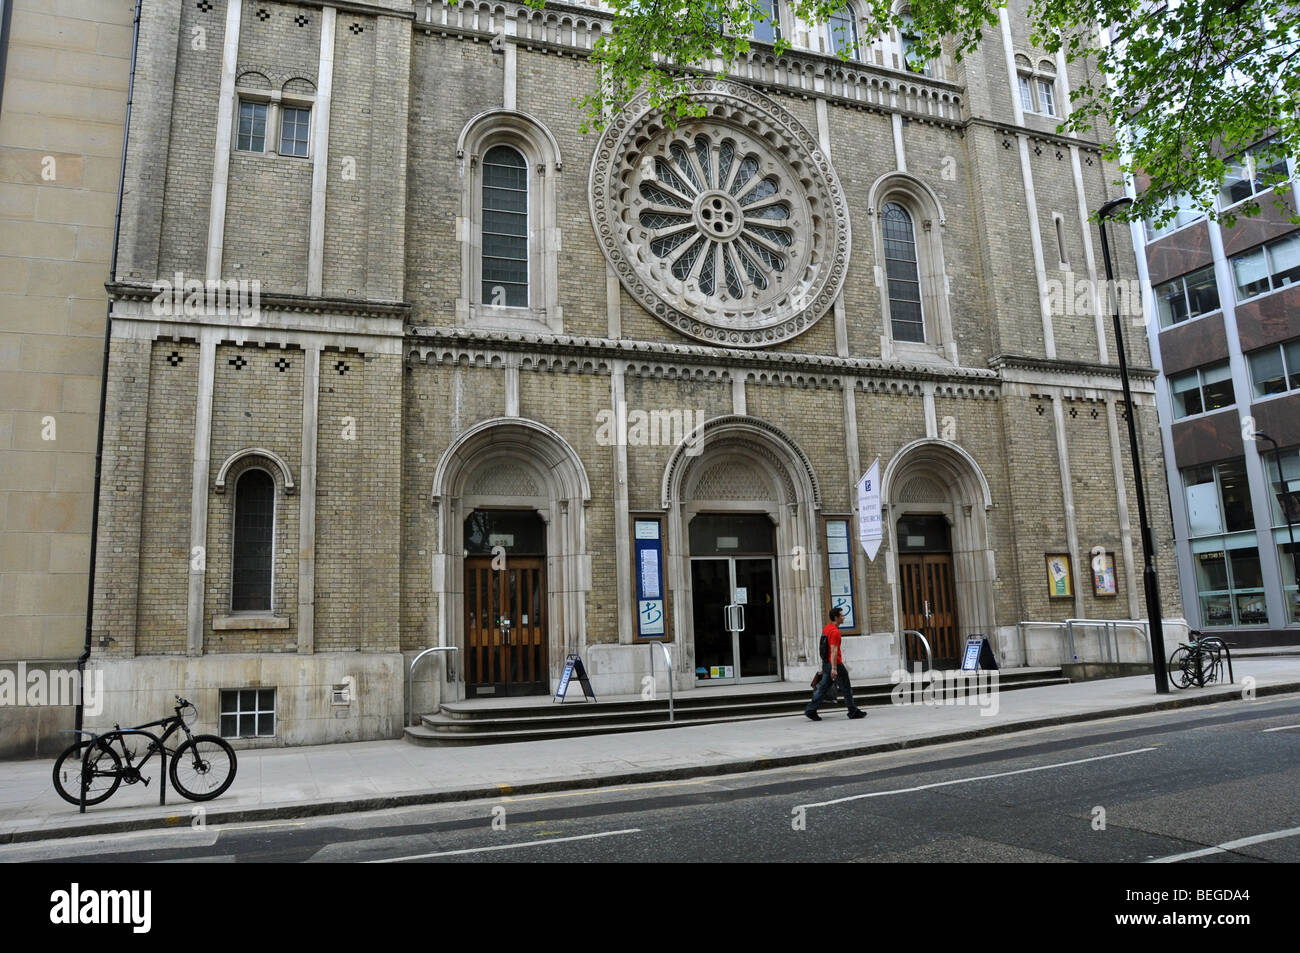 A Baptist Church in London's Covent Garden UK - Stock Image